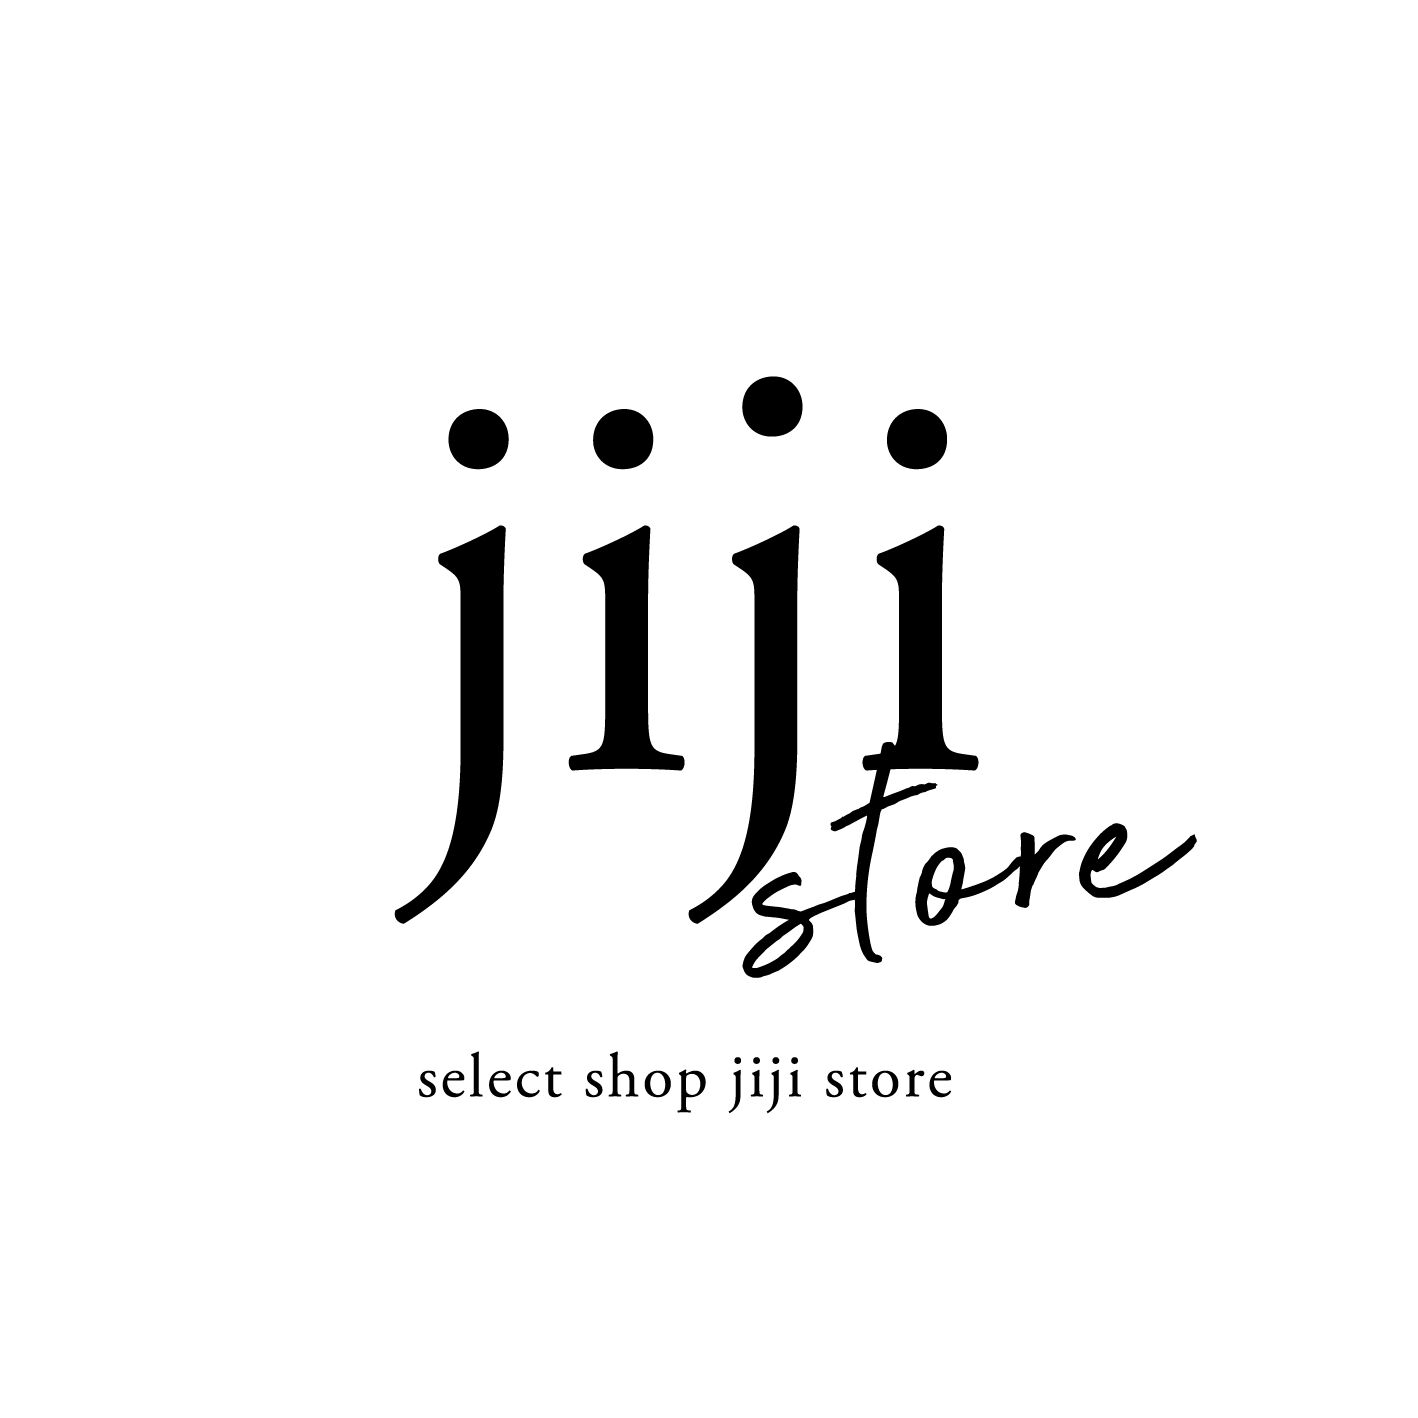 jiji store [ select shop ]